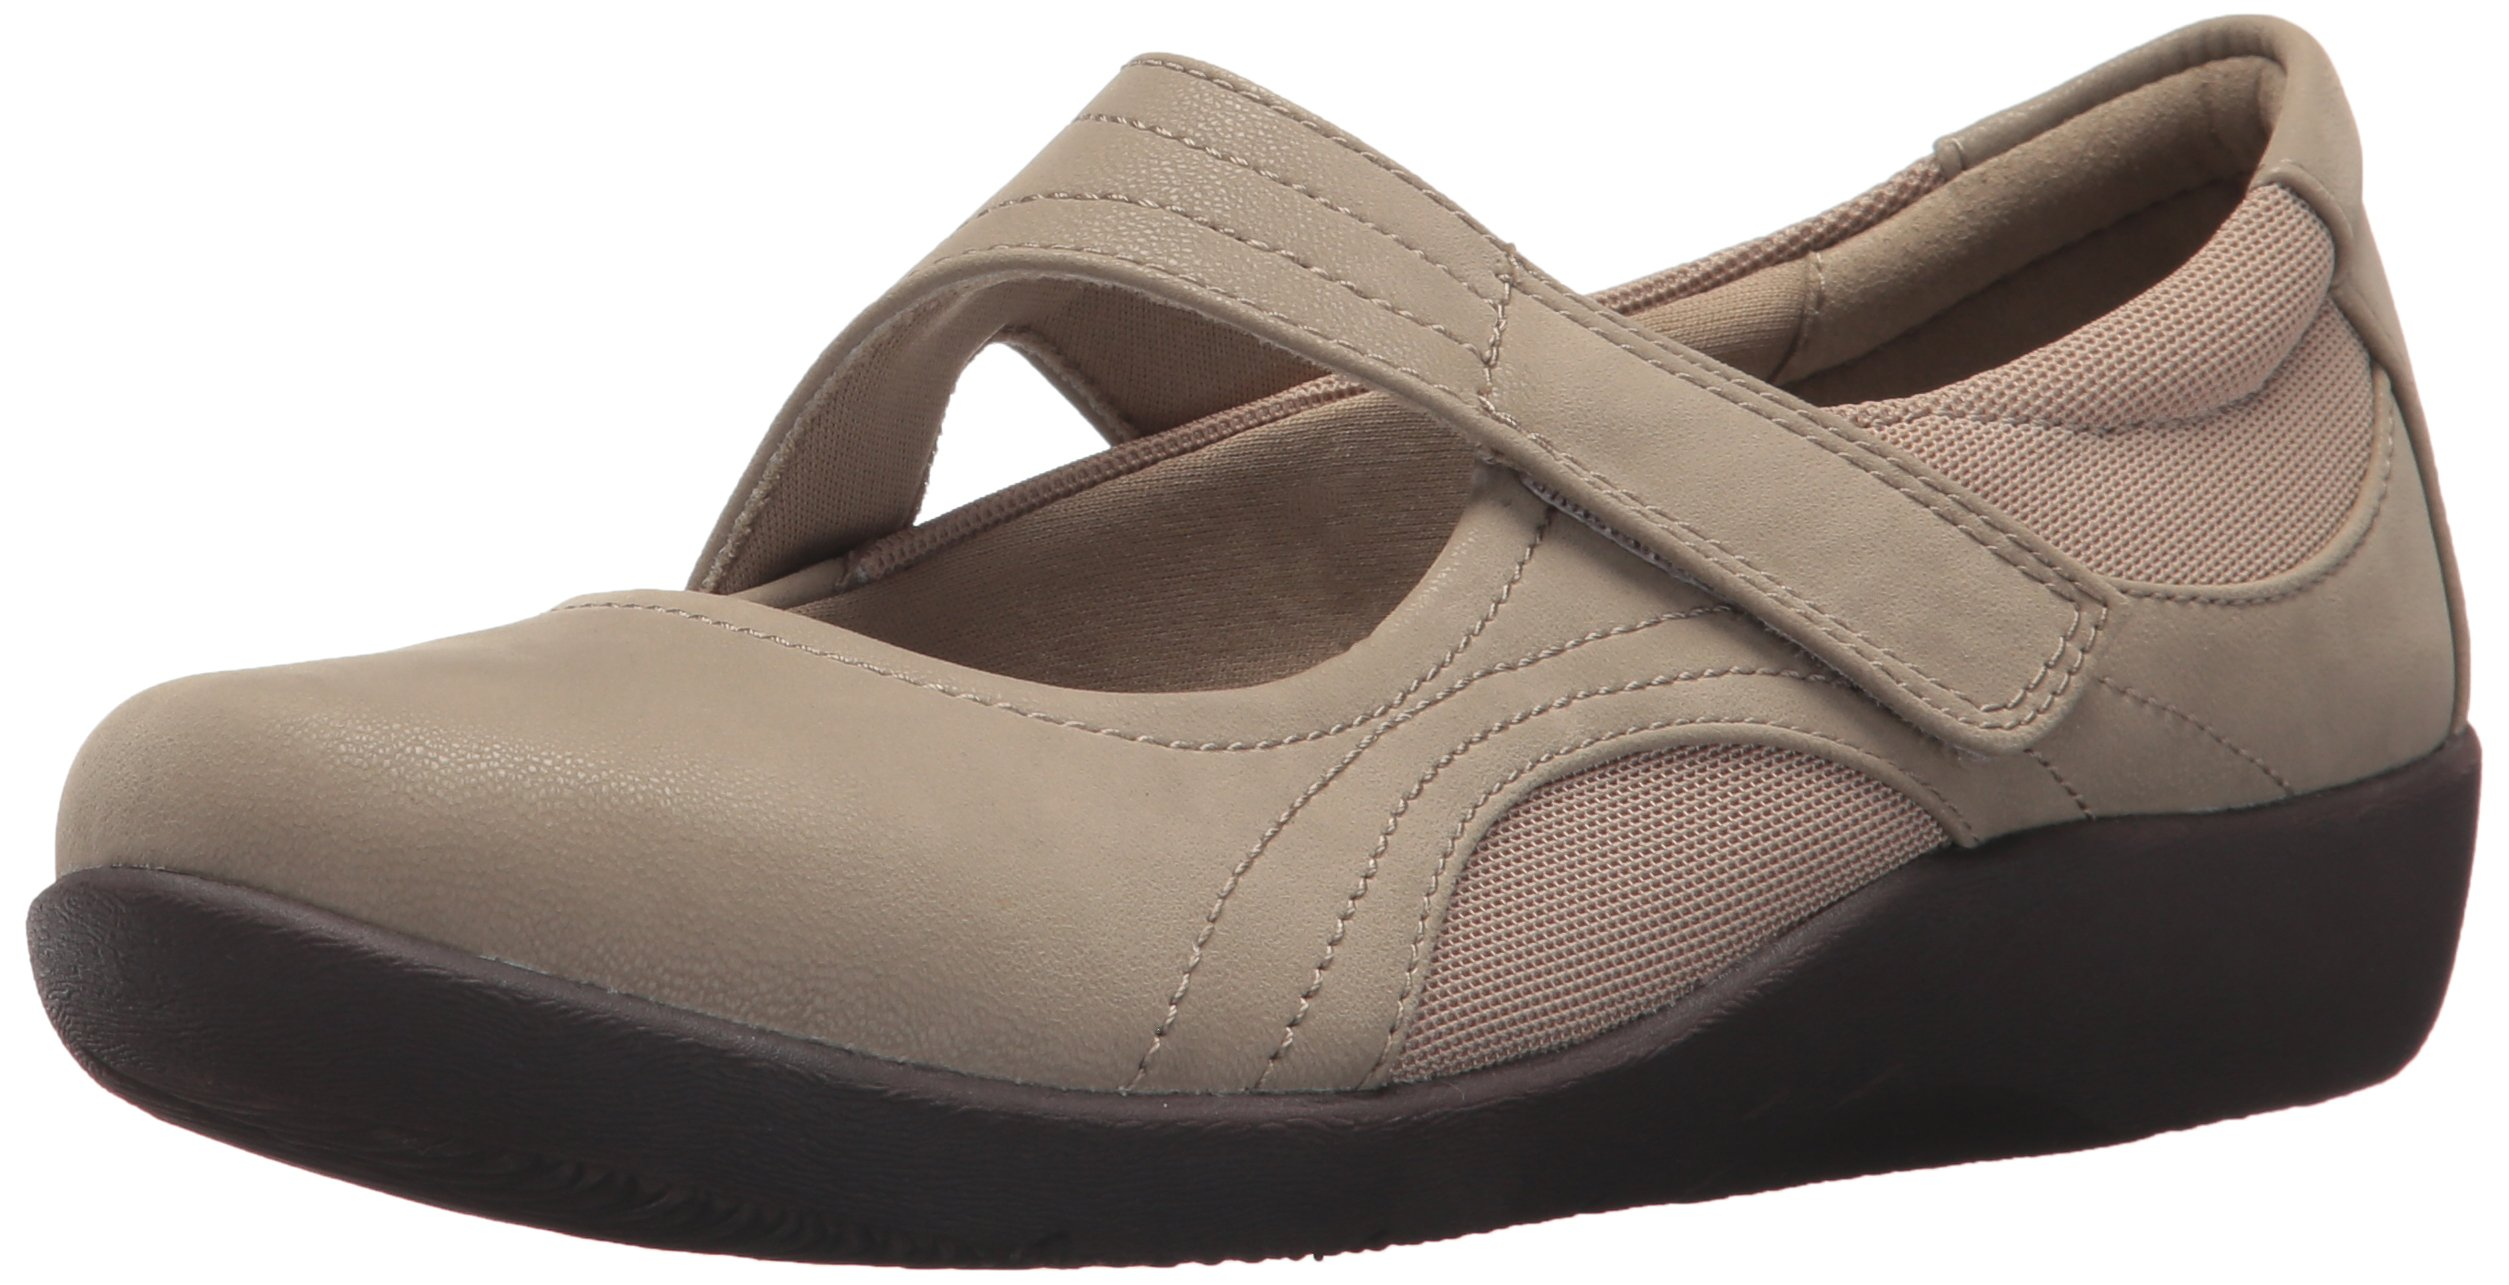 CLARKS Women's Sillian Bella Mary Jane Flat, sand synthetic nubuck, 7 M US